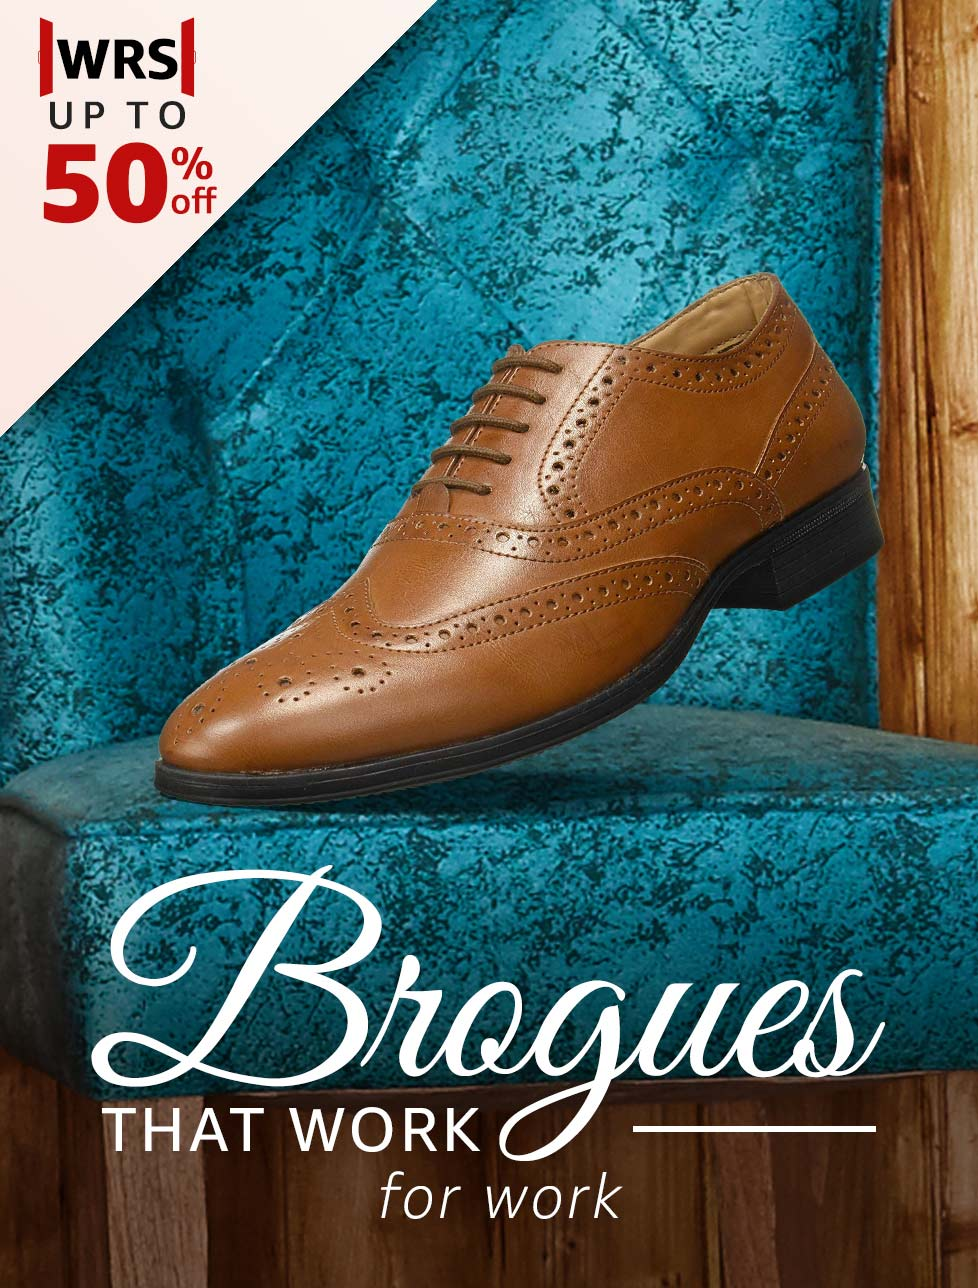 Brougues that work for work